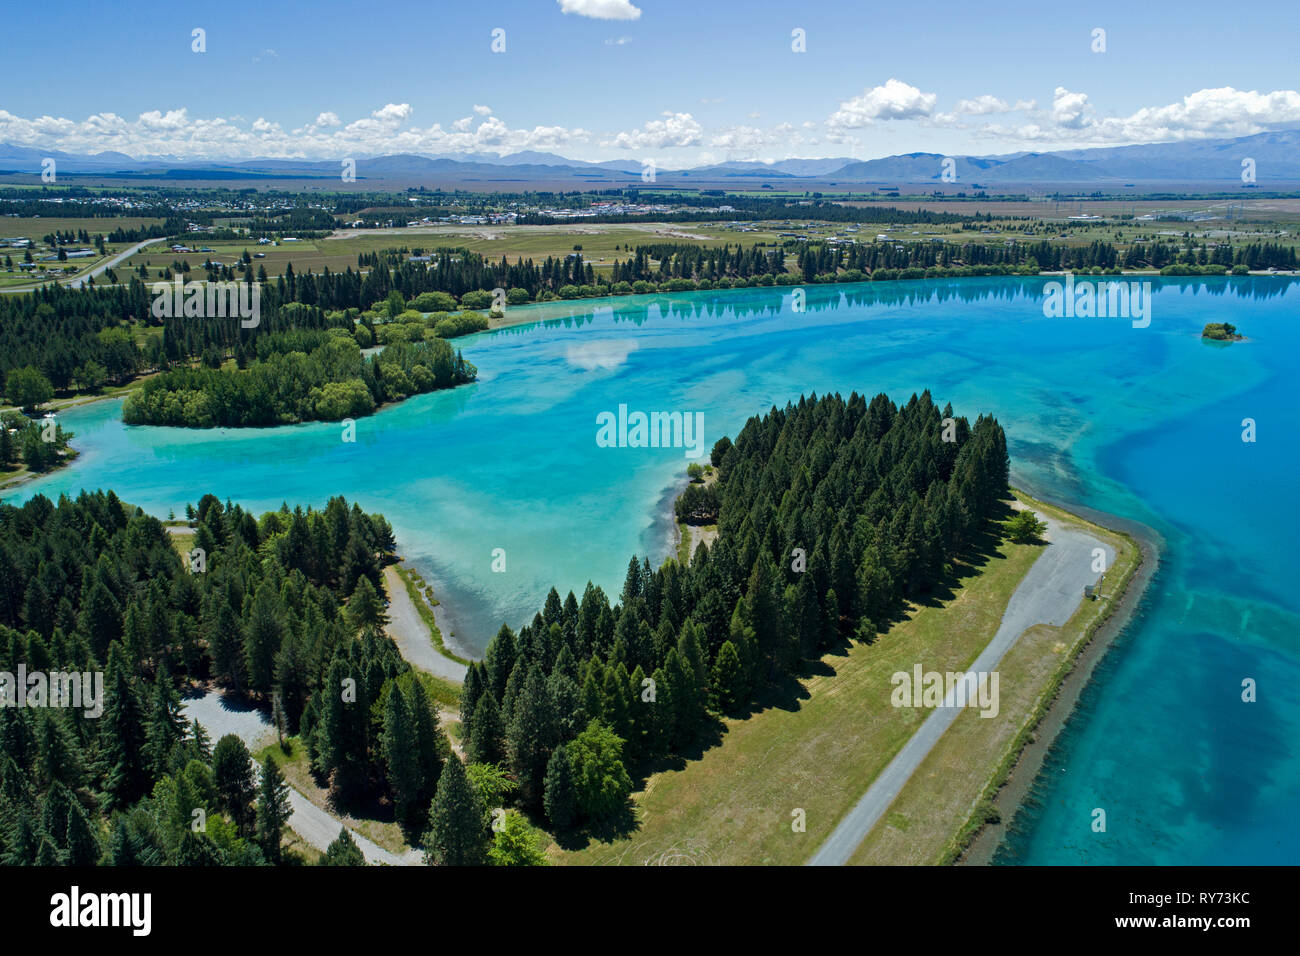 Lake Ruataniwha and Twizel, Mackenzie Country, South Island, New Zealand - aerial - Stock Image